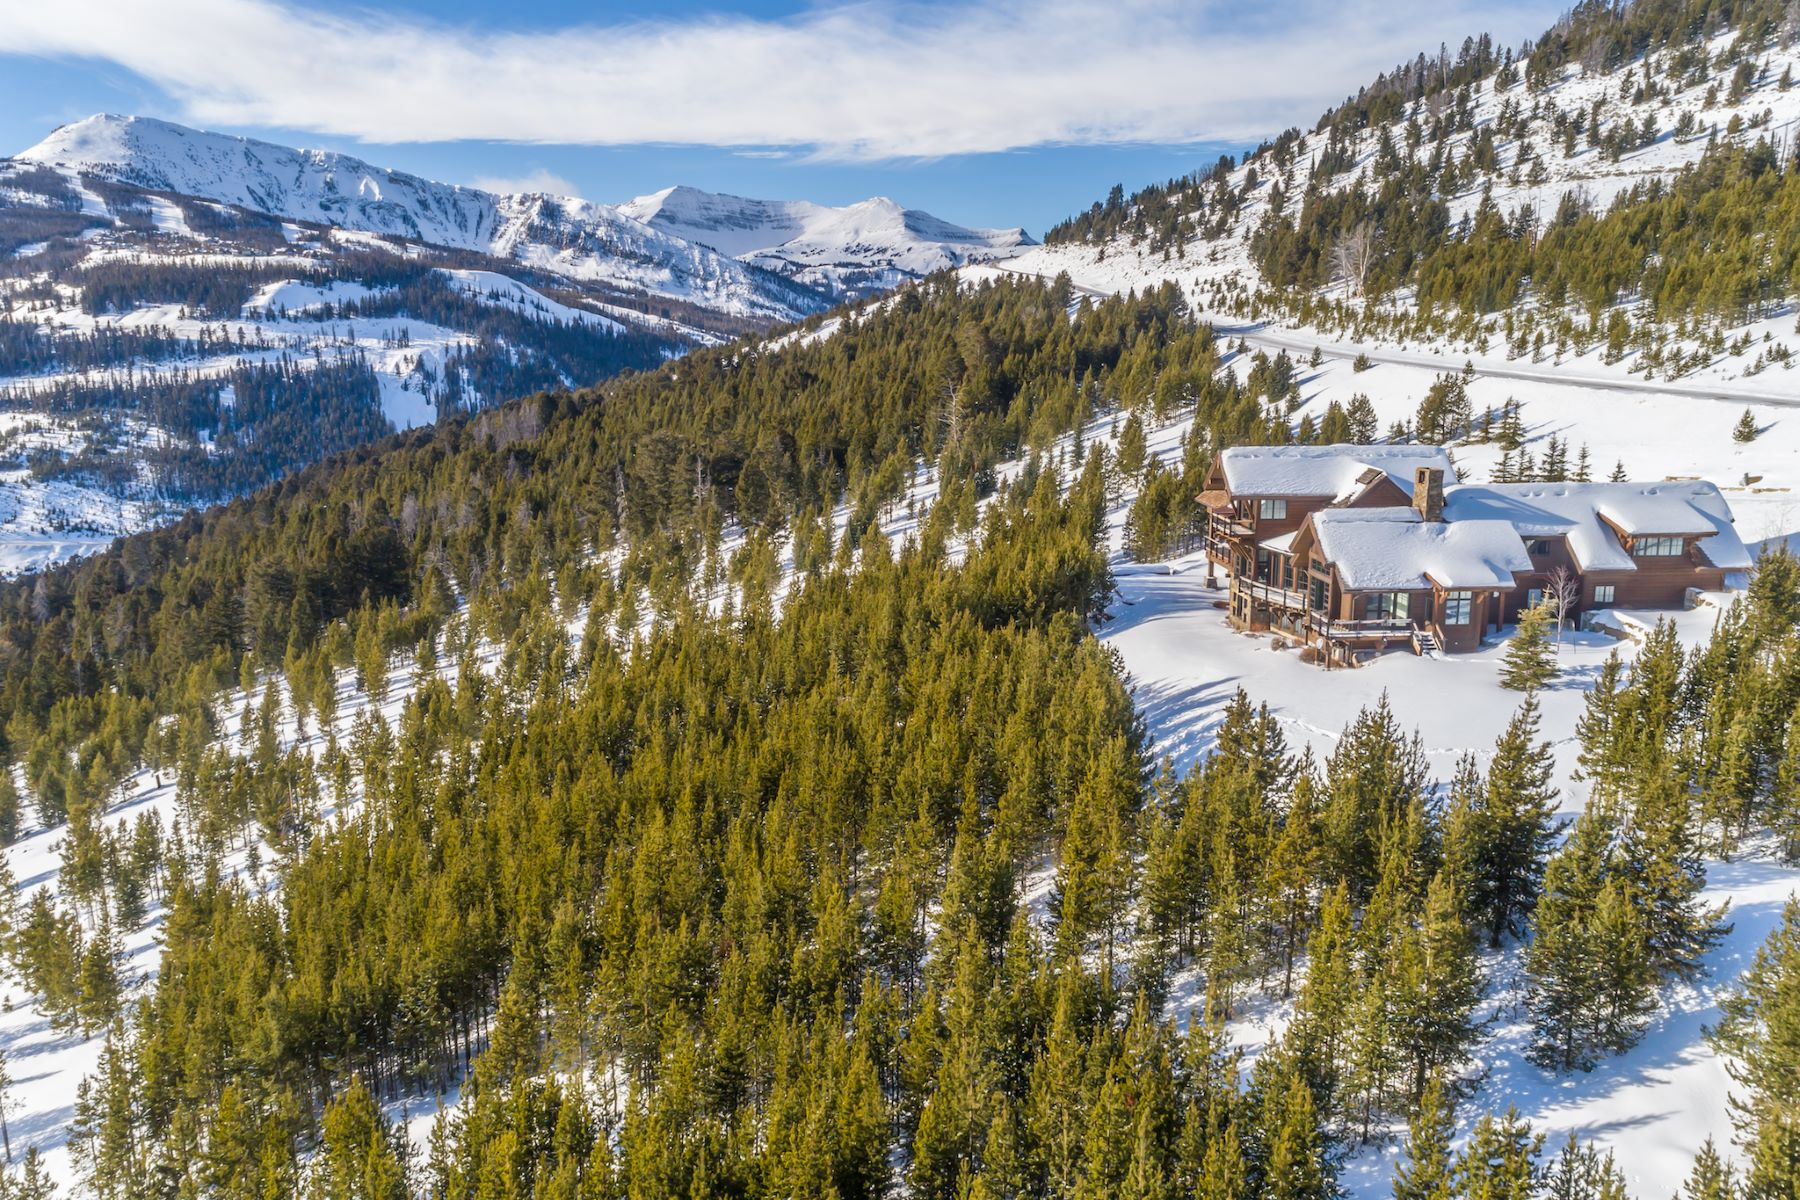 Single Family Homes for Sale at Yellowstone Club Home 77 Travertine Road Big Sky, Montana 59716 United States